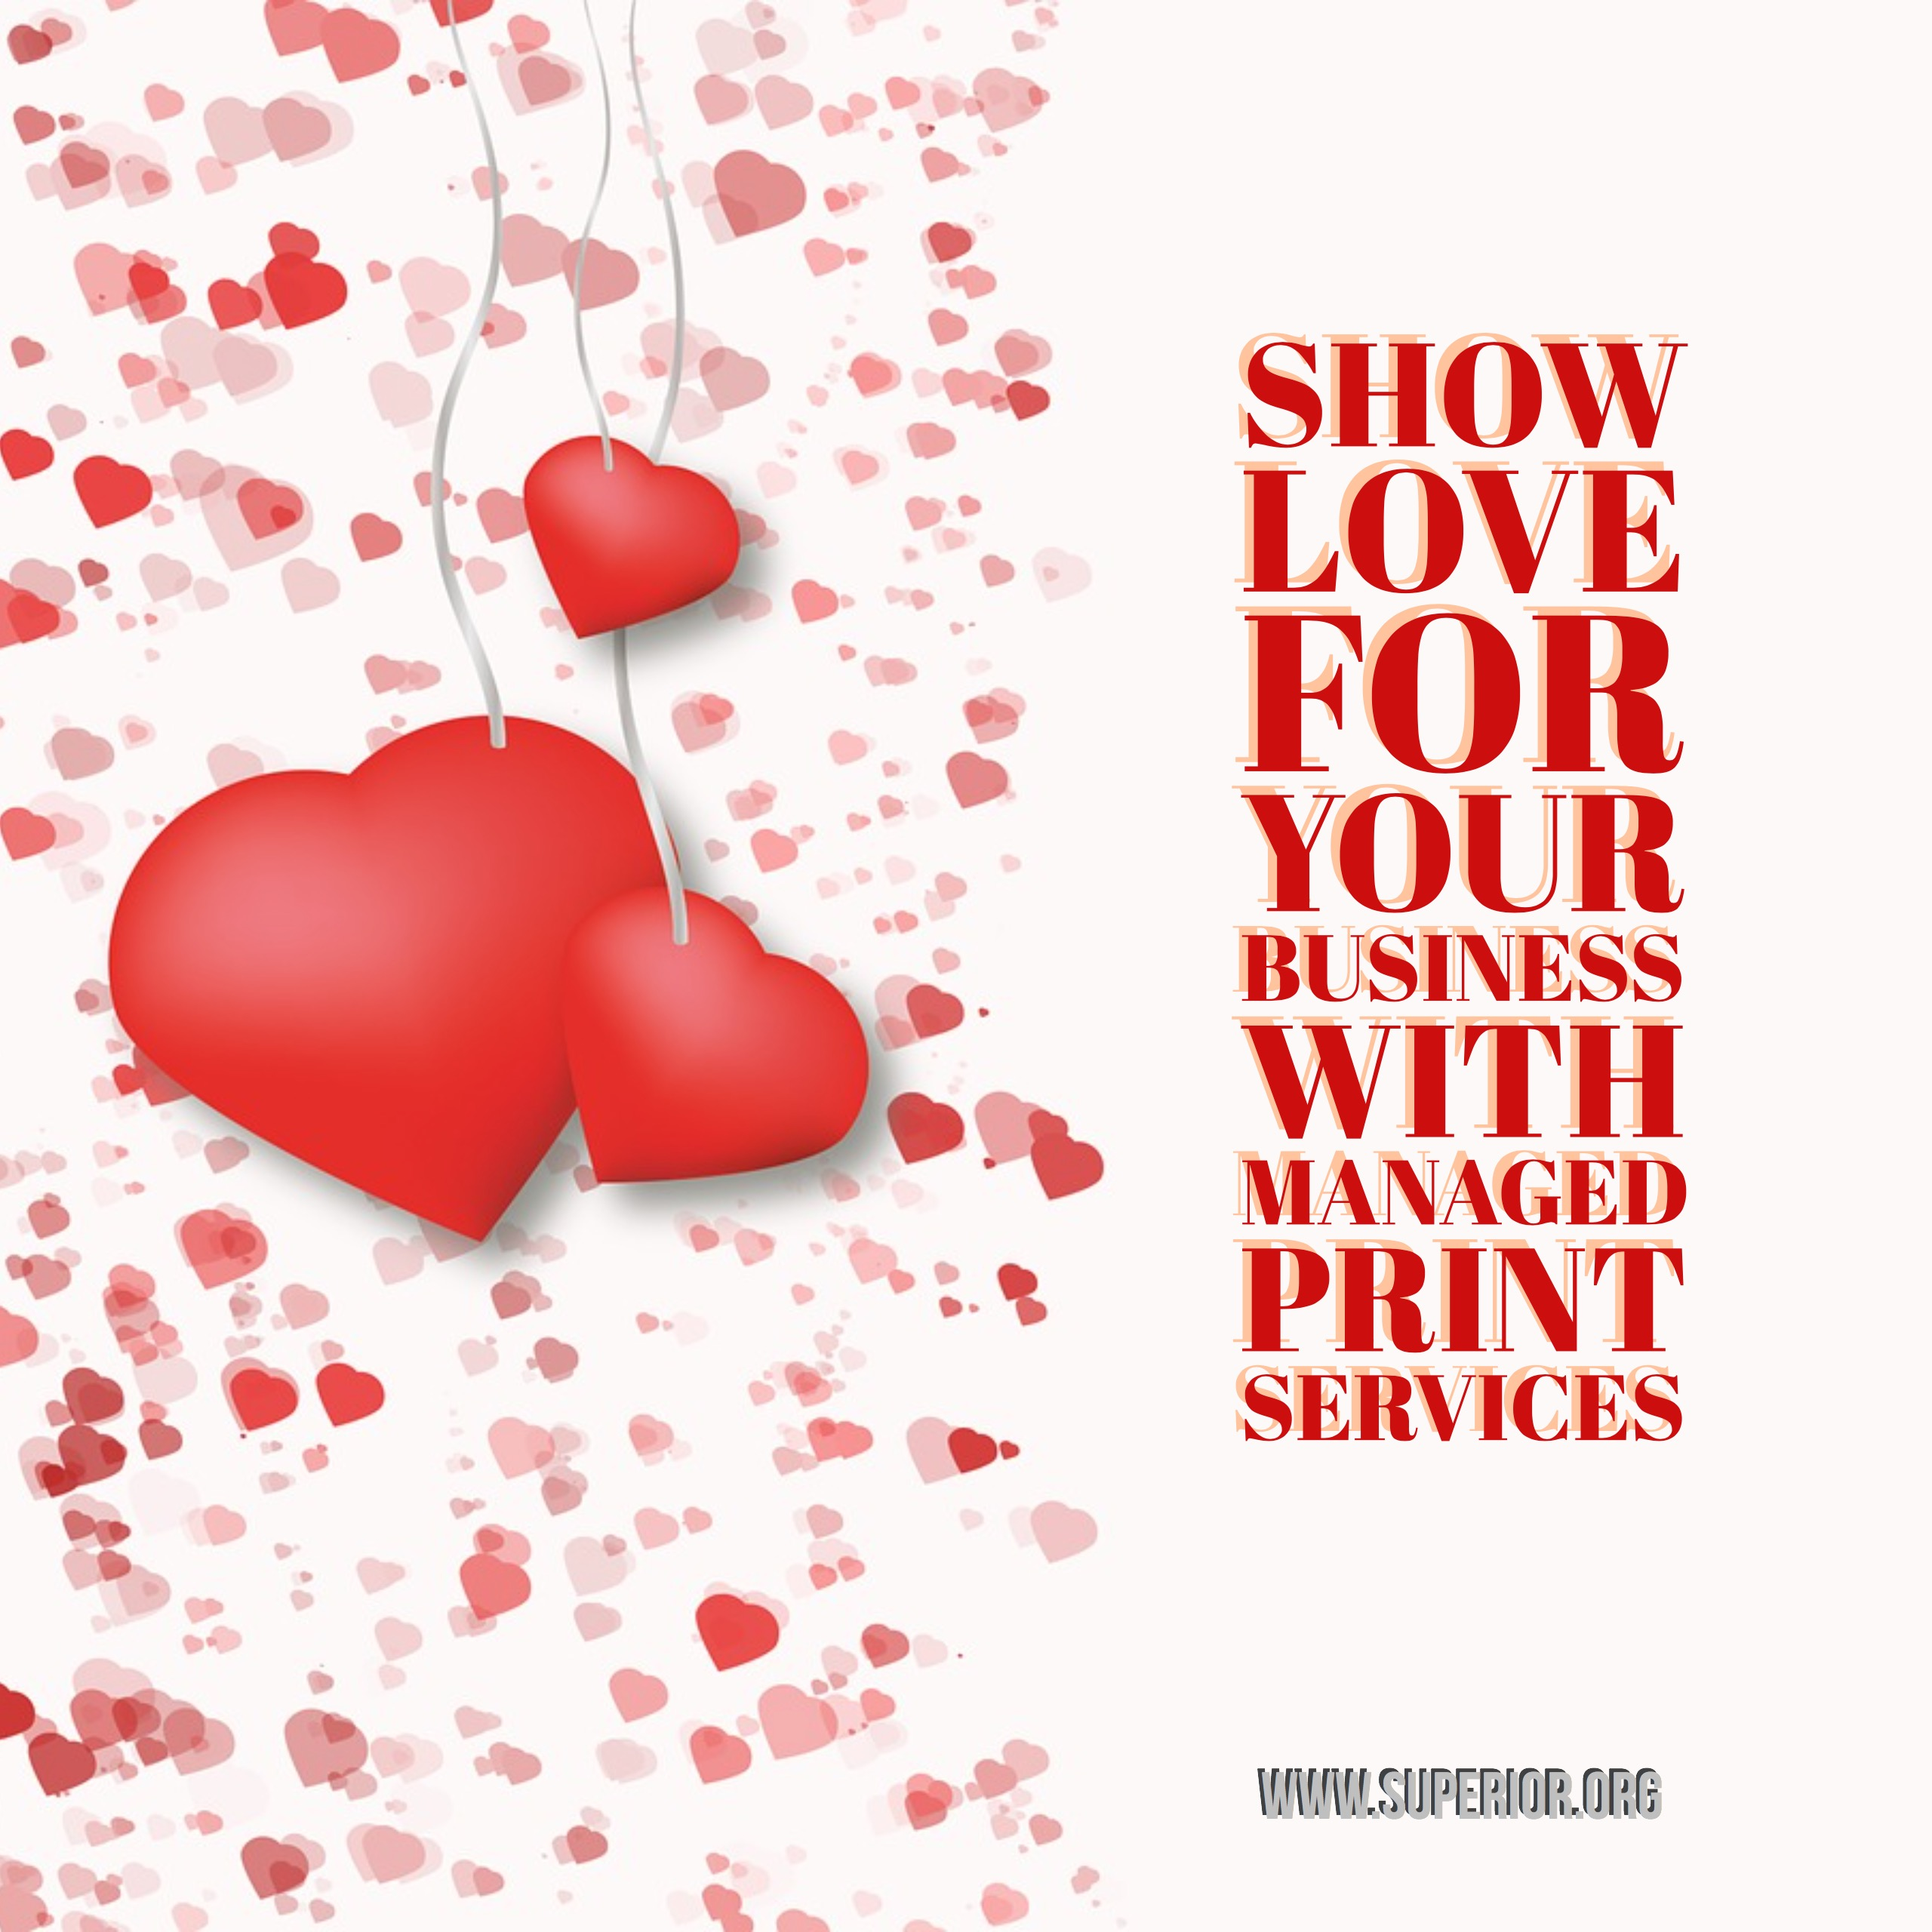 Managed Print Services Show Love for Your Business